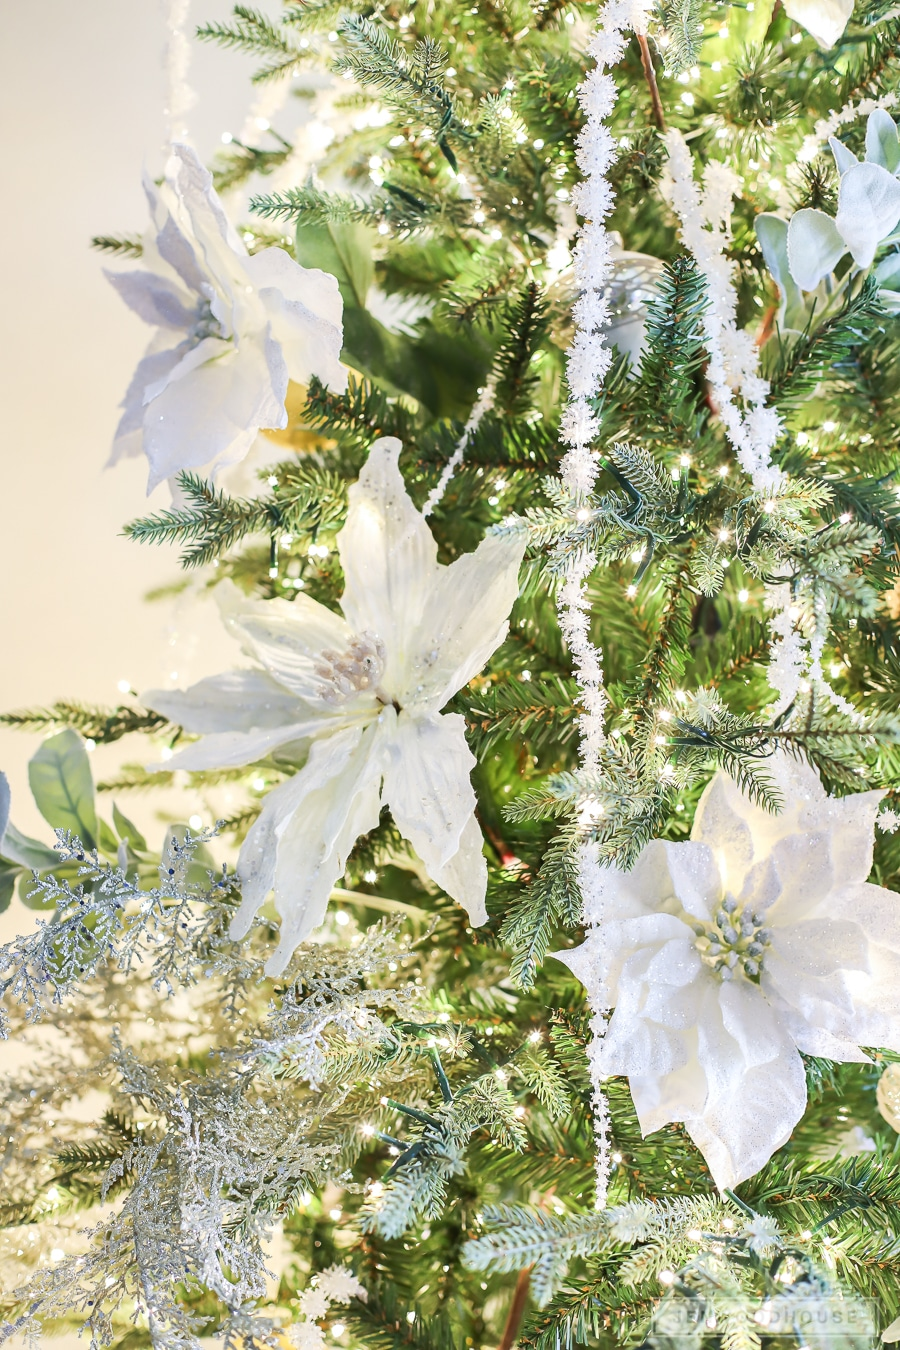 White poinsettias on Christmas tree